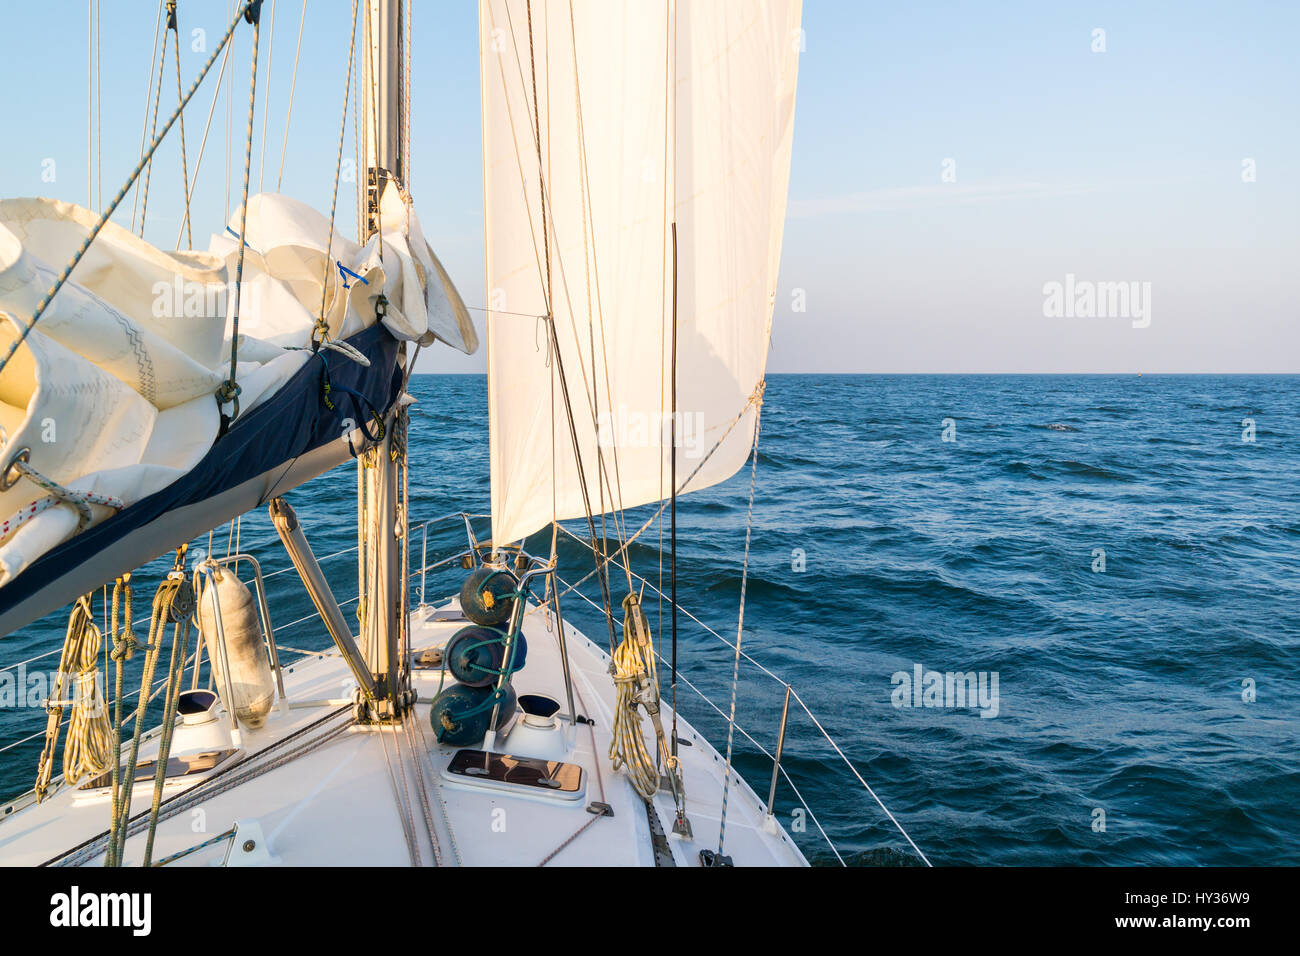 Front of sailing boat with foresail cruising on calm and sunny Waddensea, Netherlands - Stock Image